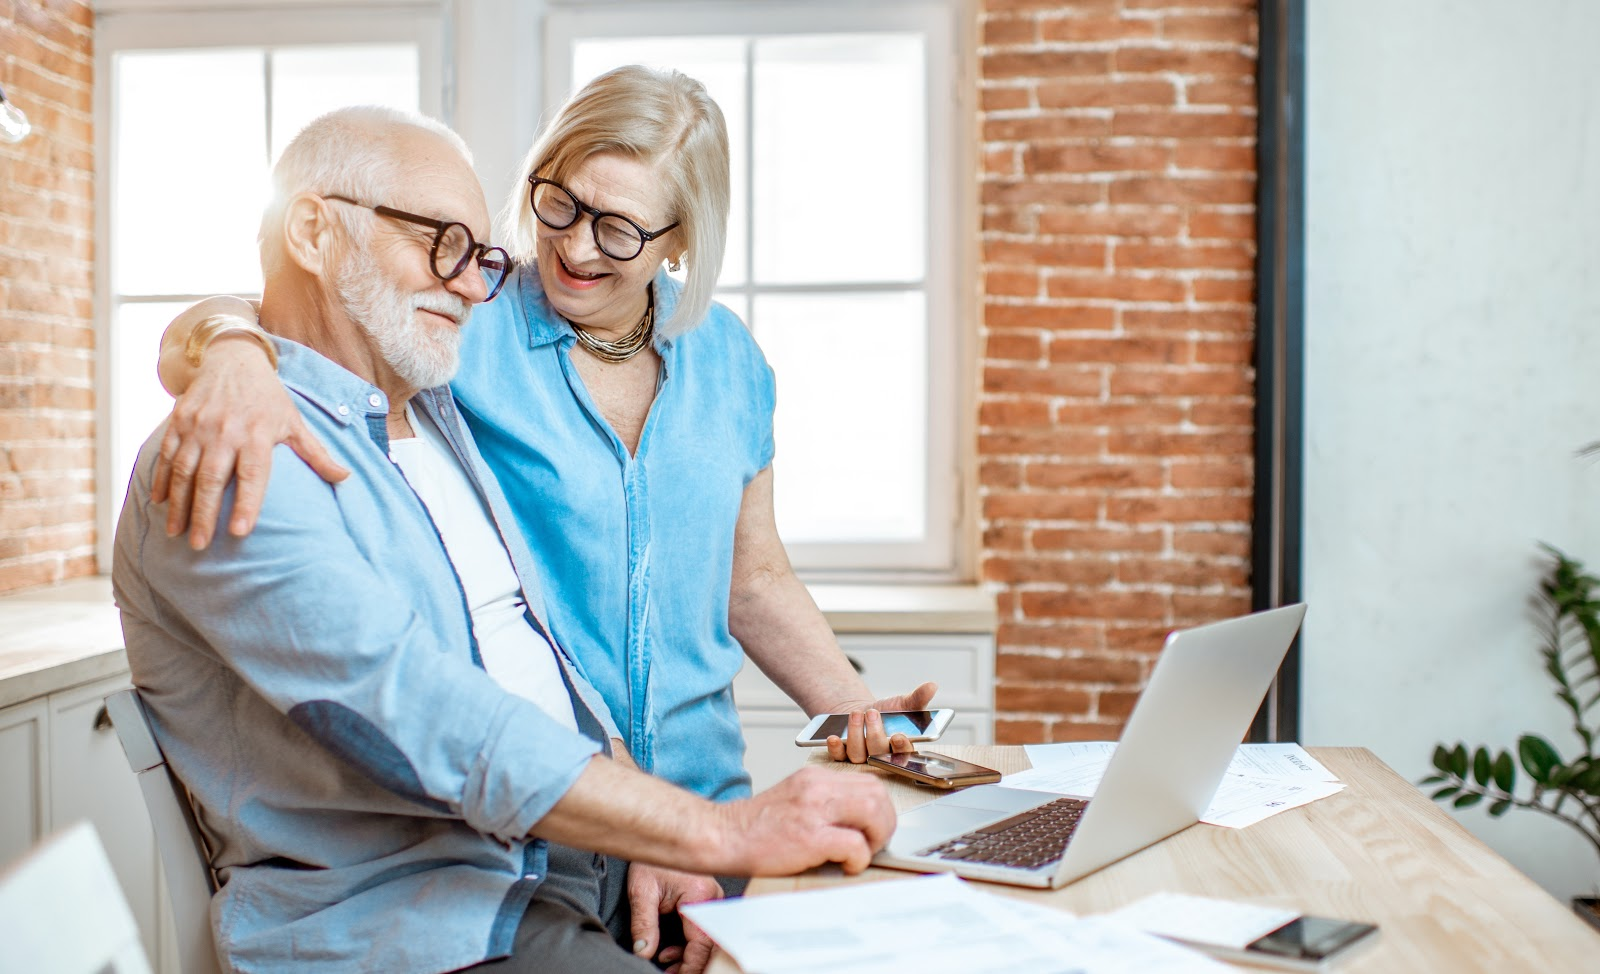 How often are dividends paid: A couple uses a computer together